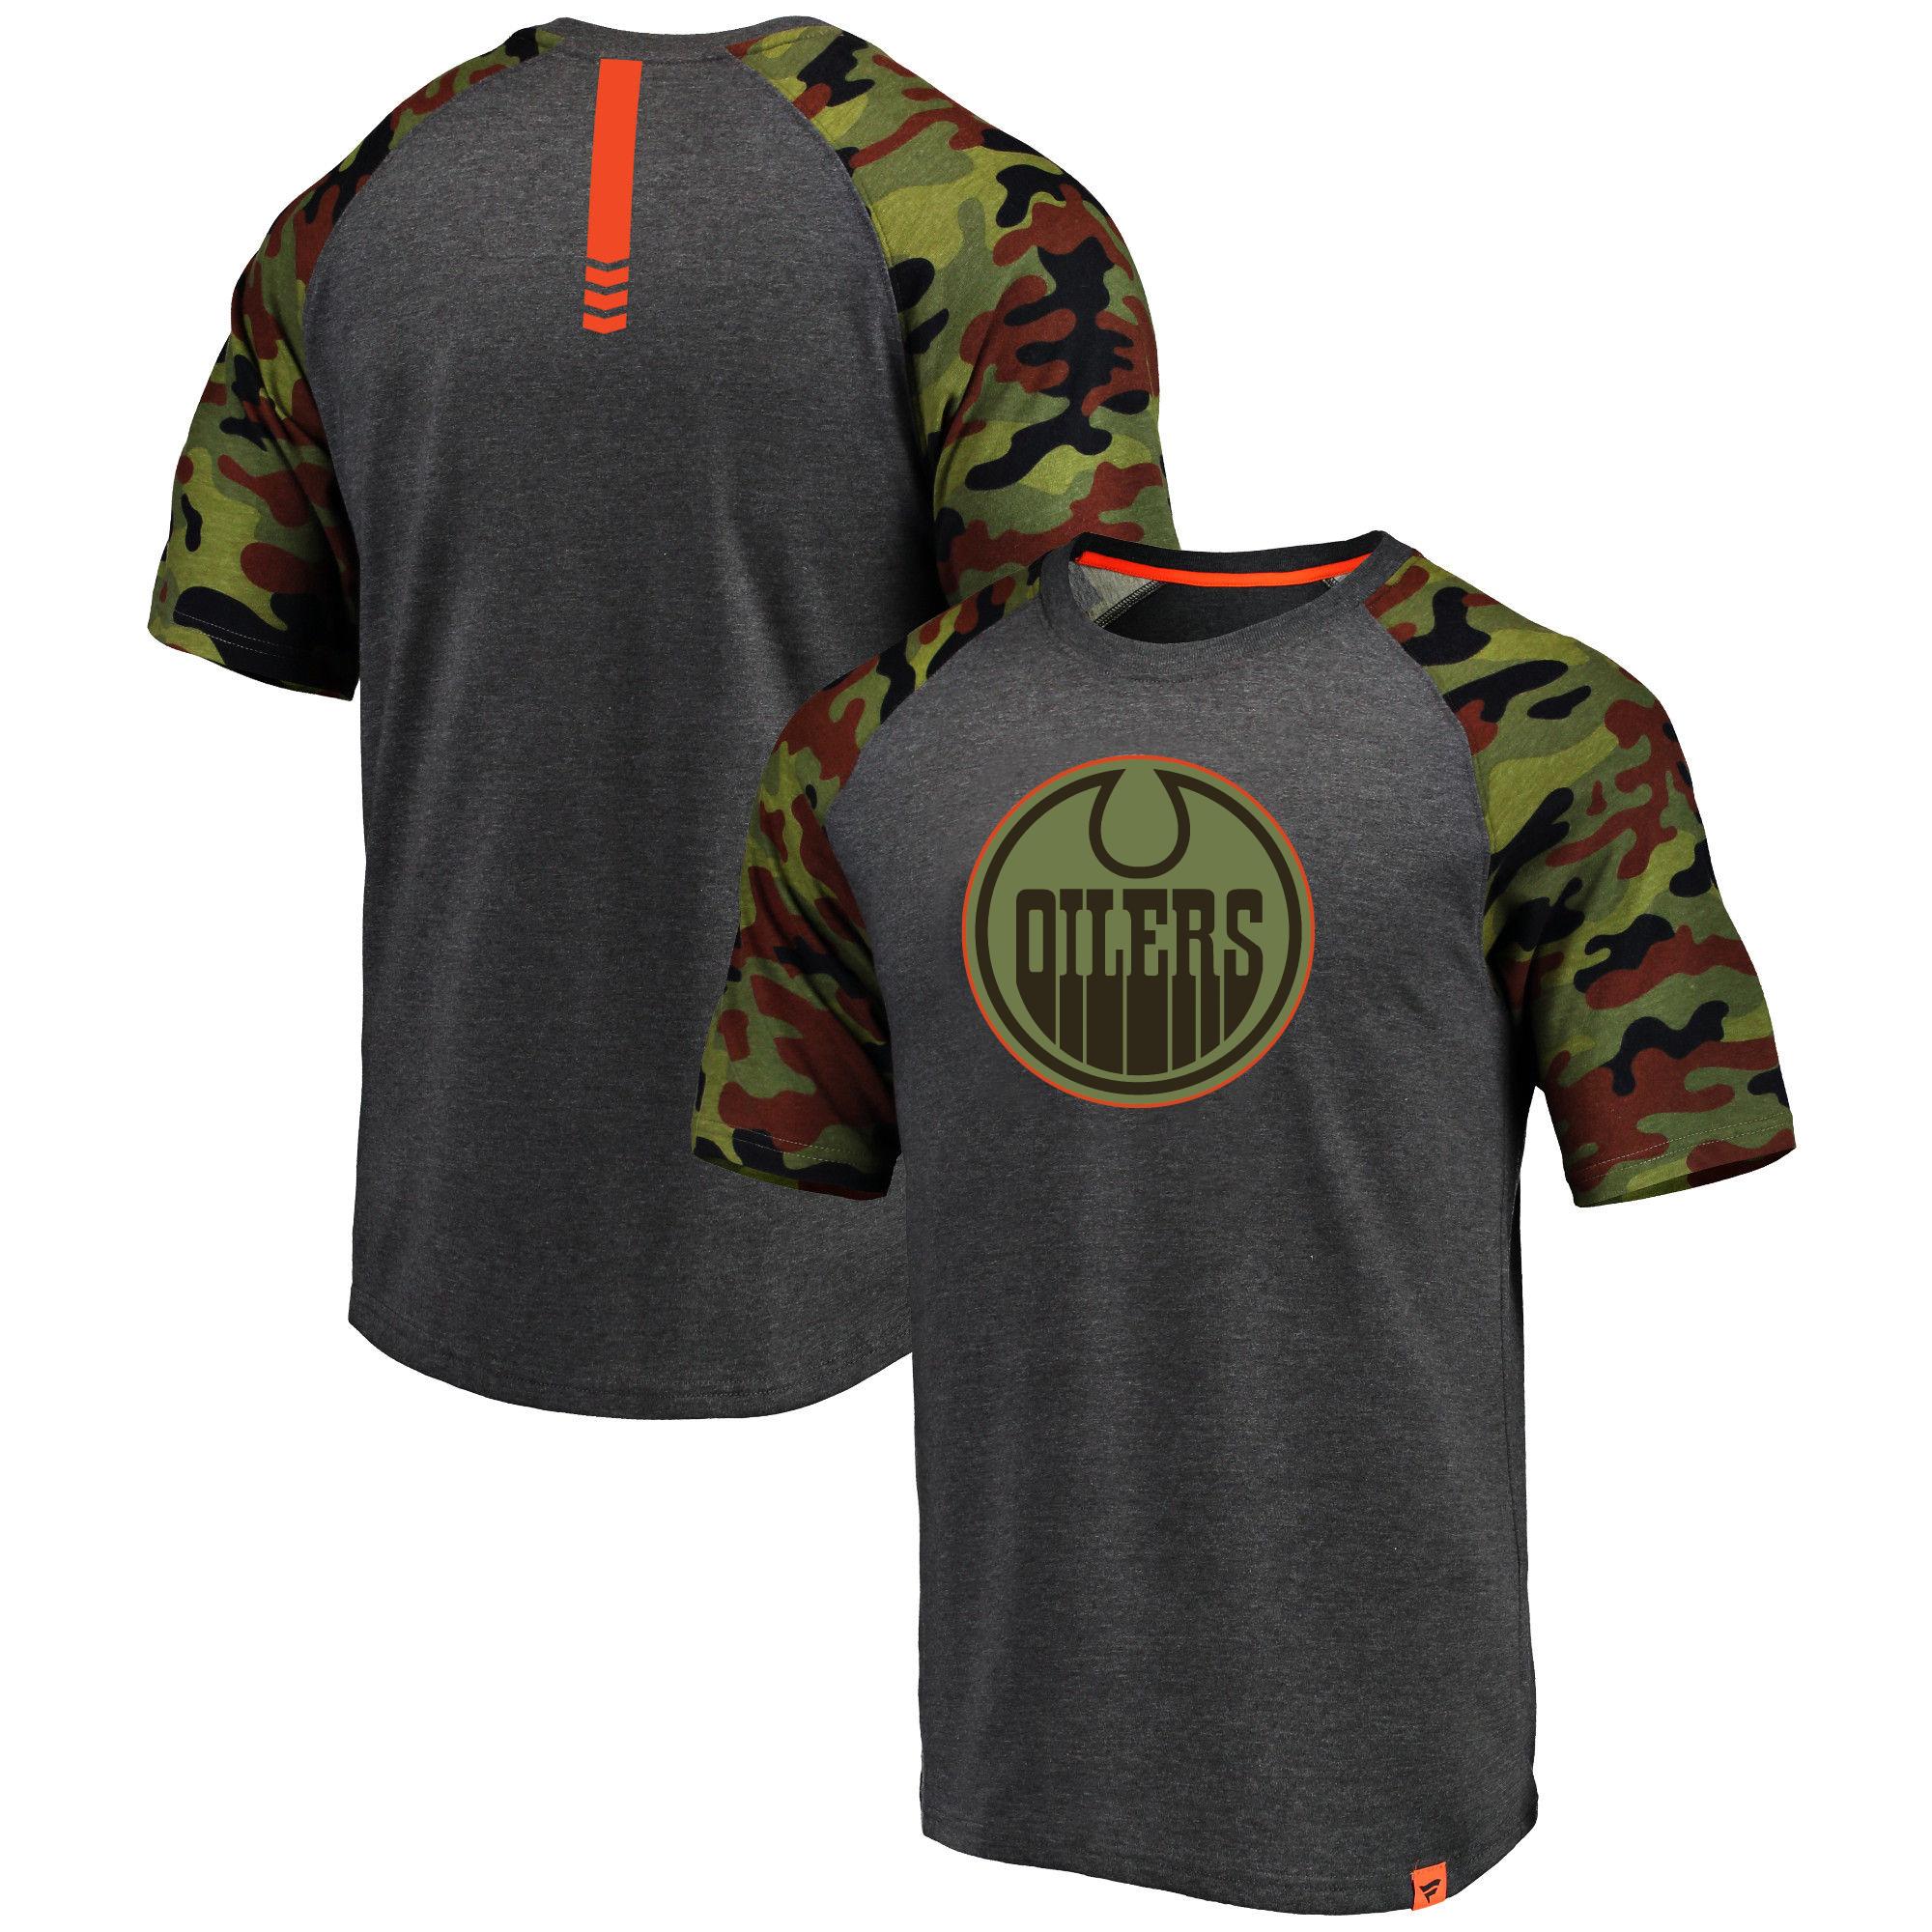 Edmonton Oilers Fanatics Branded Heathered Gray/Camo Recon Camo Raglan T-Shirt